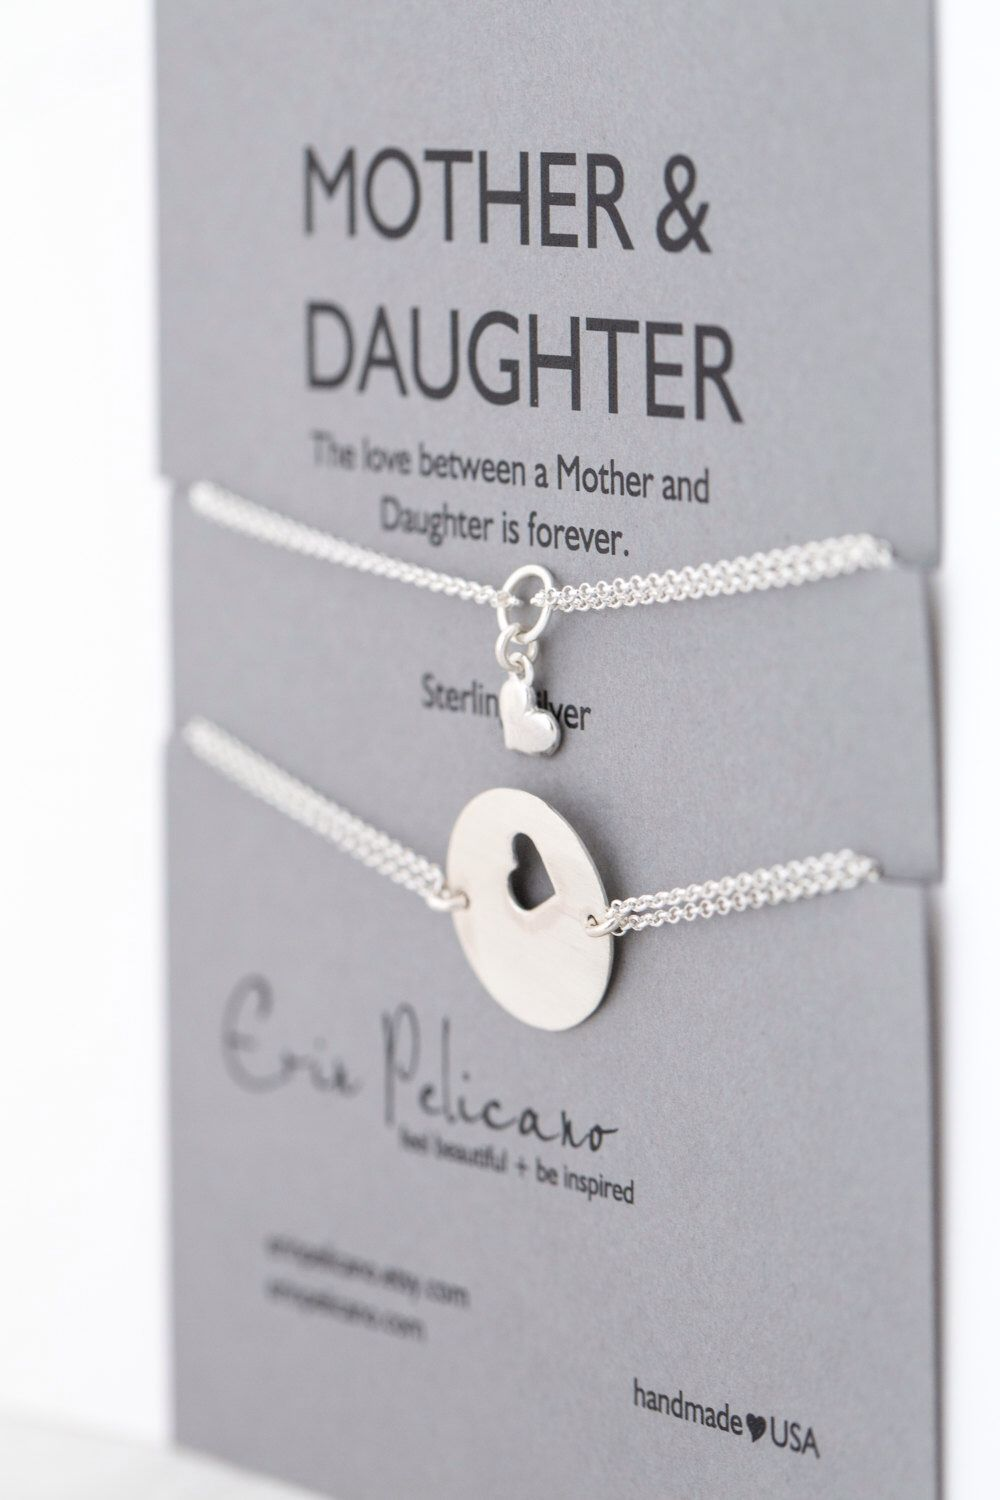 A Set Of 2 Bracelets For The Love Between MOTHERS DAUGHTERS More Daughters Select Your Choice And Add To Cart